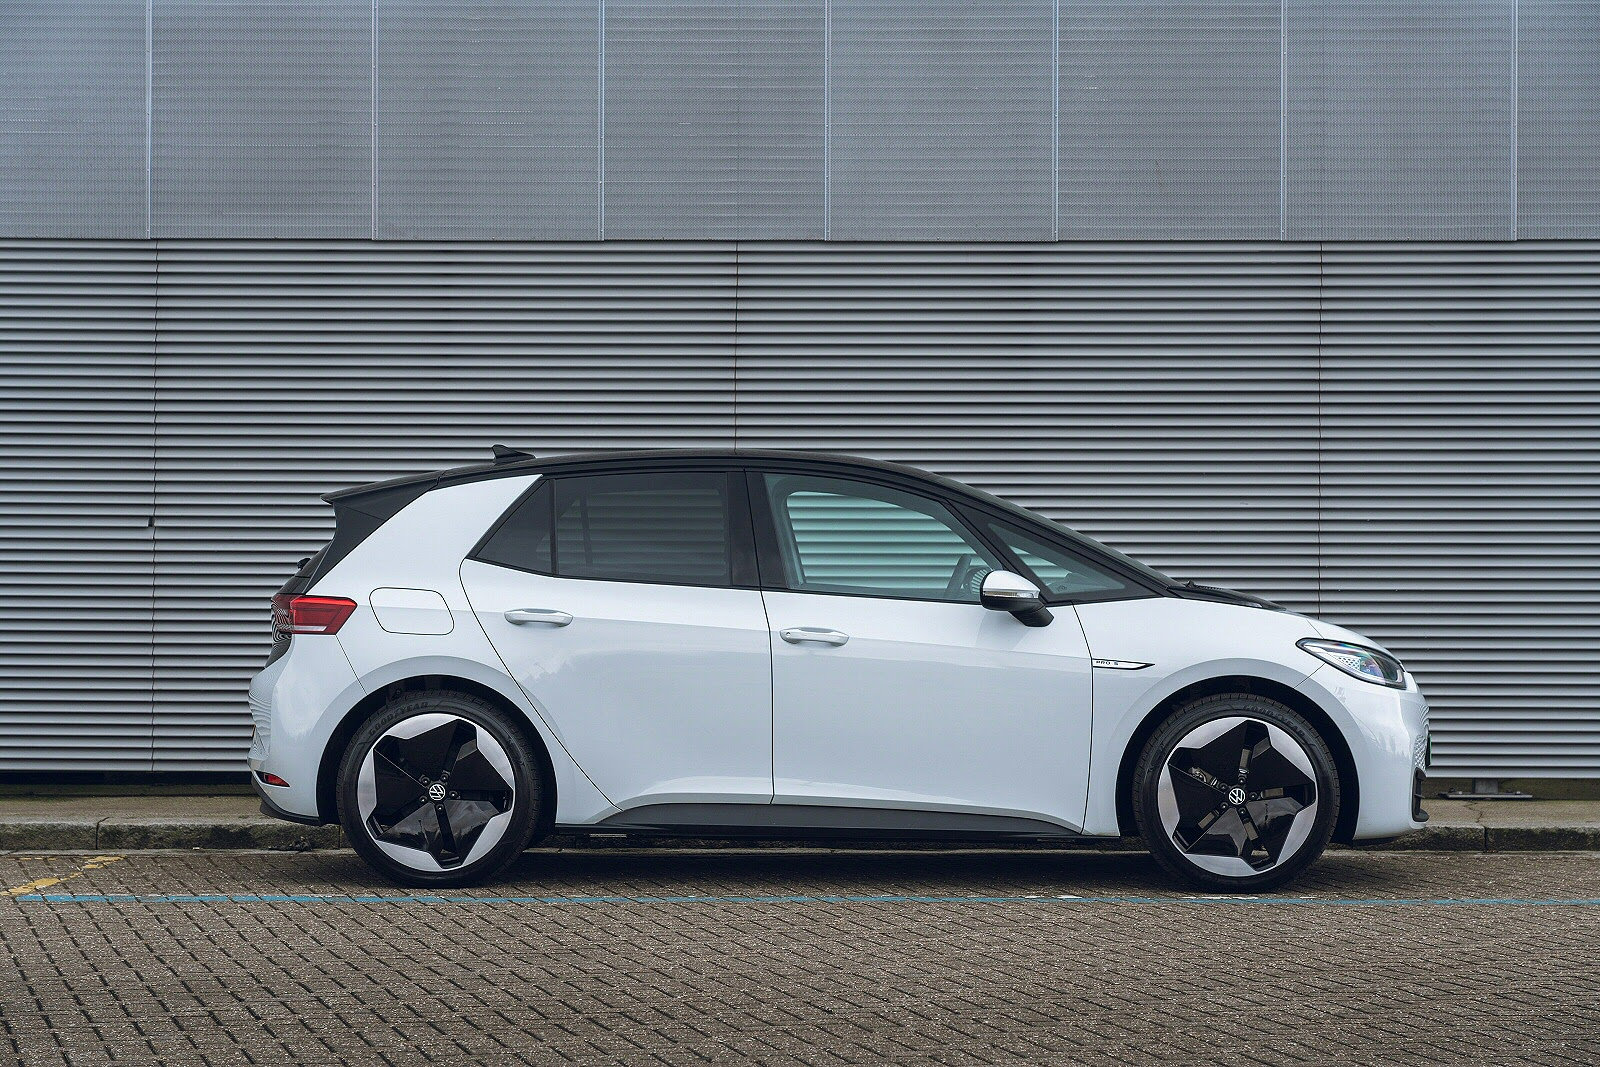 id_3_electric_hatchback_102029.jpg - 150kW Family Pro Performance 58kWh 5dr Auto